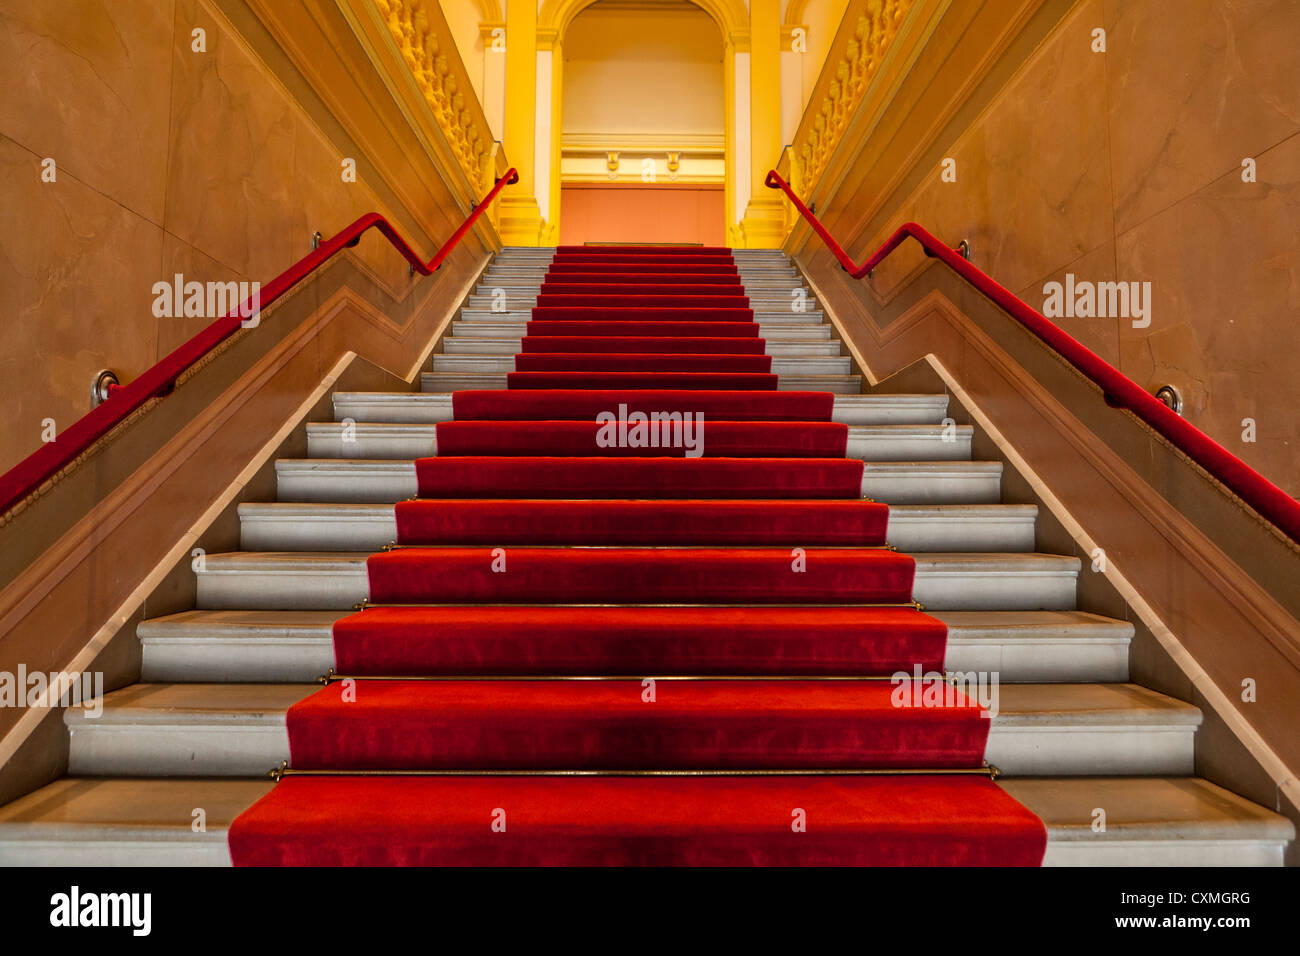 Red carpet lined staircase - Stock Image